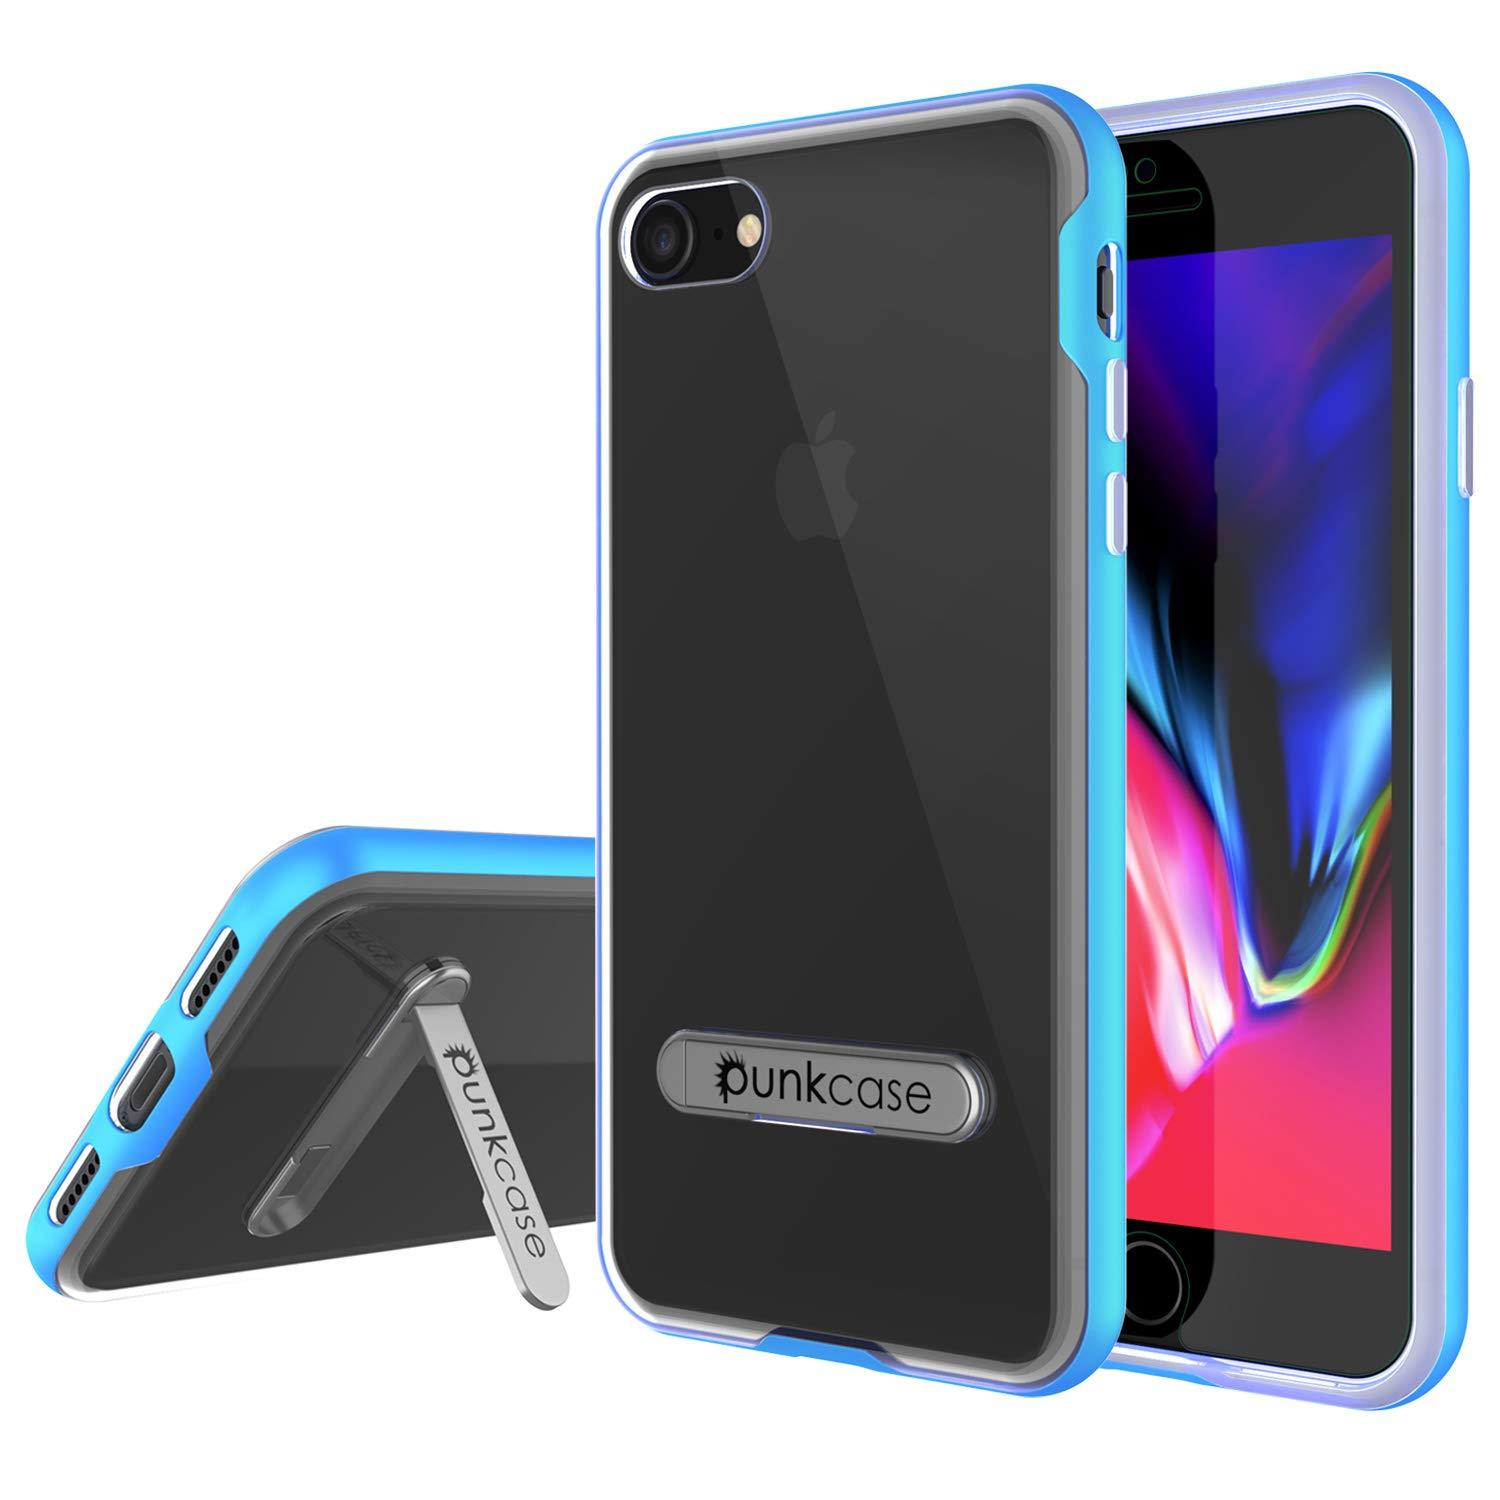 "PunkCase iPhone SE (4.7"") Lucid 3.0 Screen Protector W/ Anti-Shock Case [Blue]"